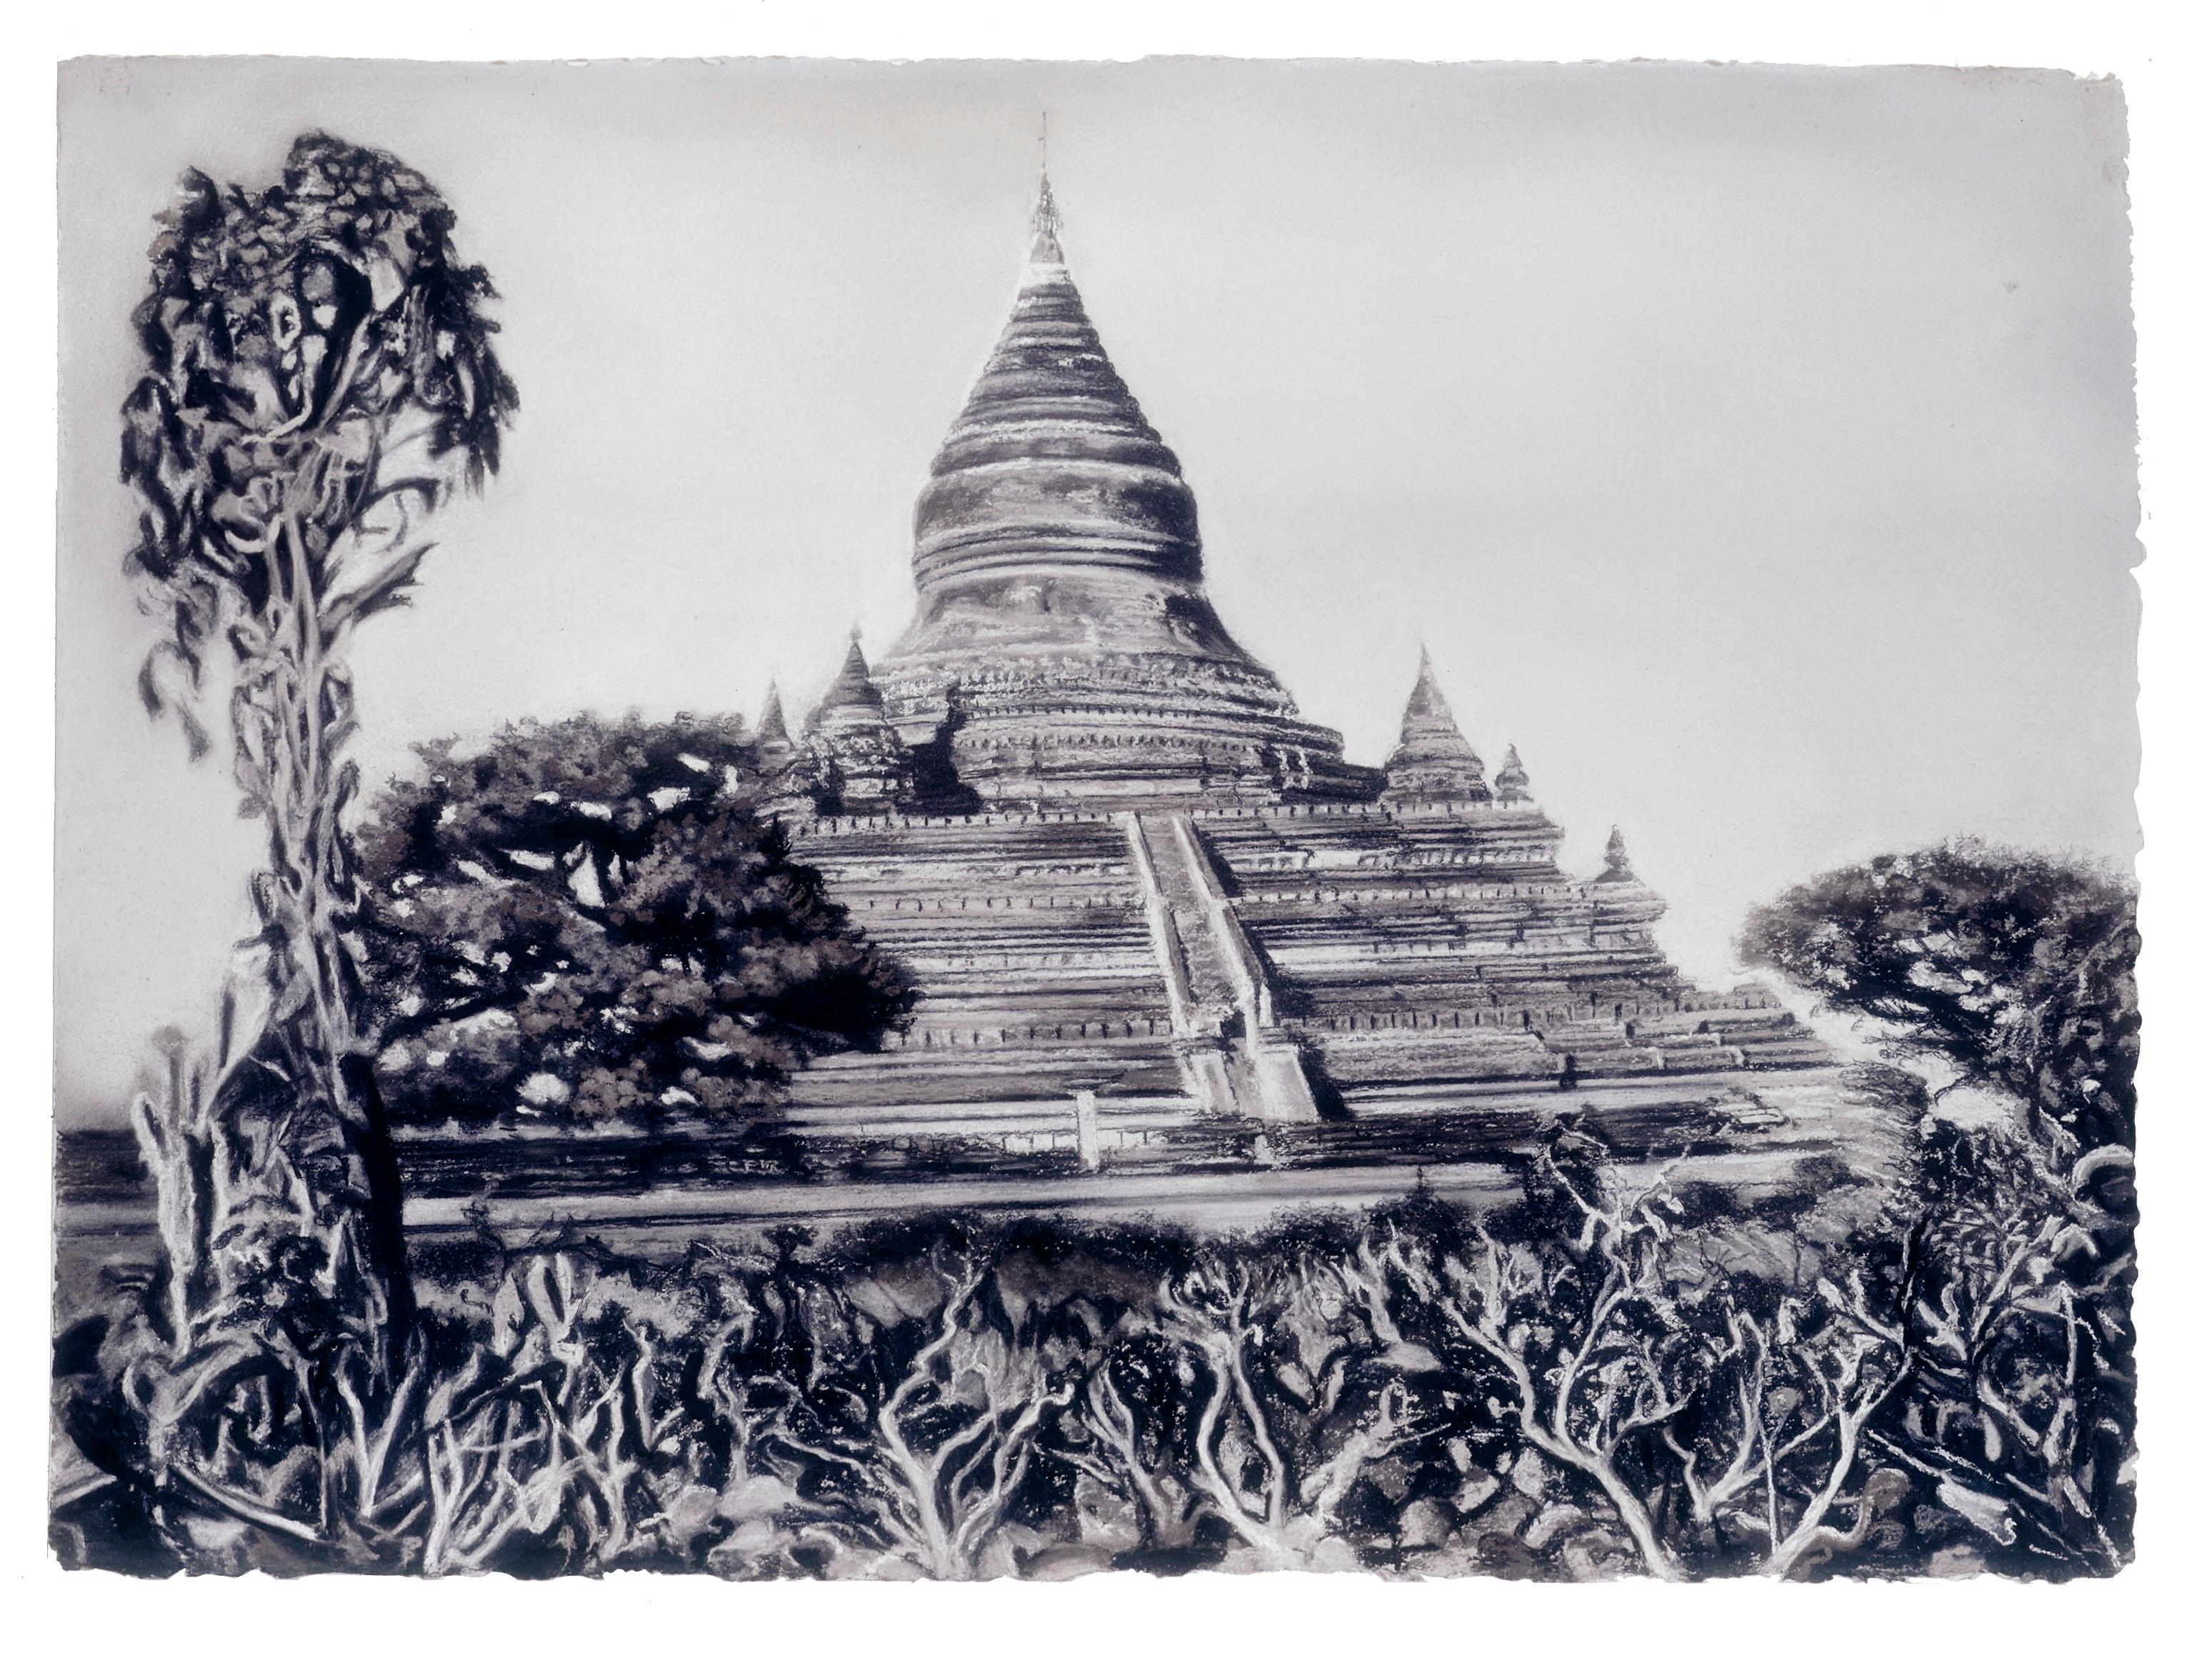 Temple by Michele Zalopany, Burmese temple charcoal and pastel landscape